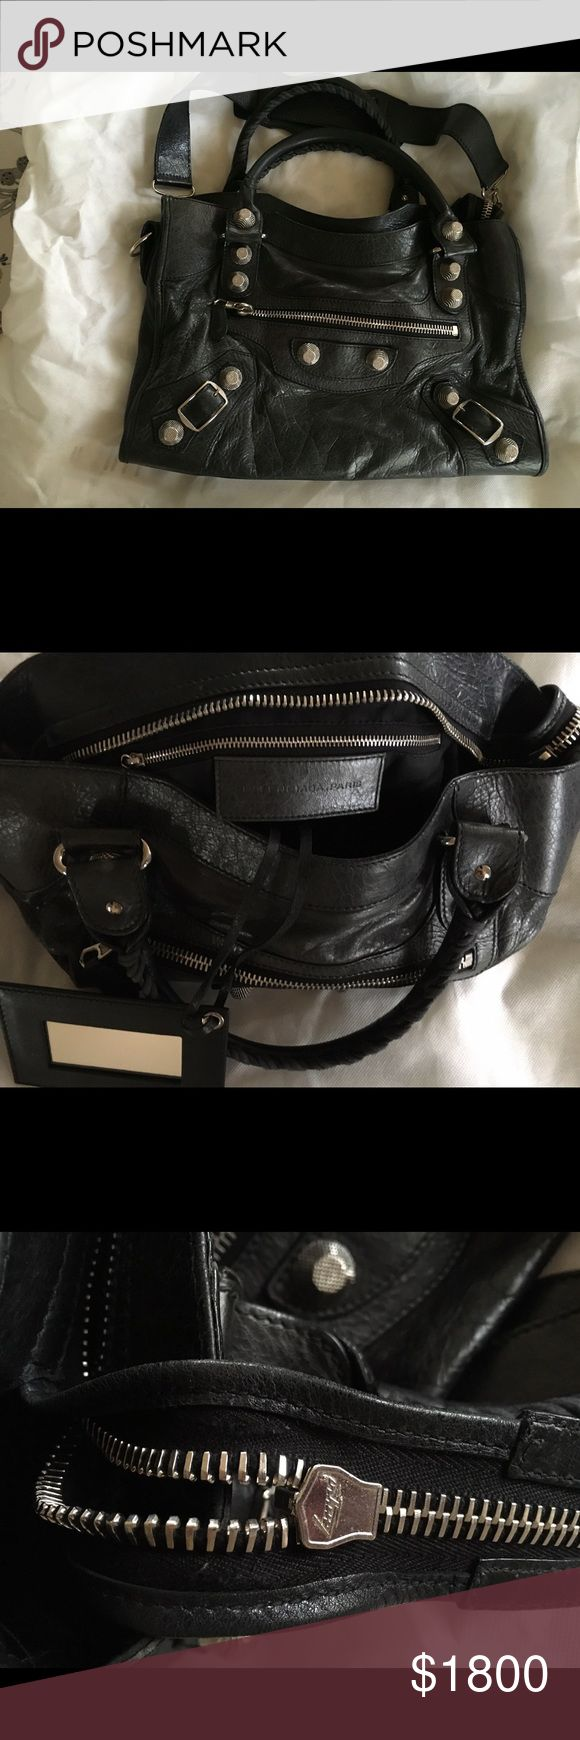 """Balenciaga Authentic Black Giant City Tote Lamb Authentic Balenciaga Giant City  Chic Bag. This bag is in excellent condition. Bag Measures approximately 14.5"""" X 10"""" X 4"""" I have the packaging receipt. Balenciaga Bags"""